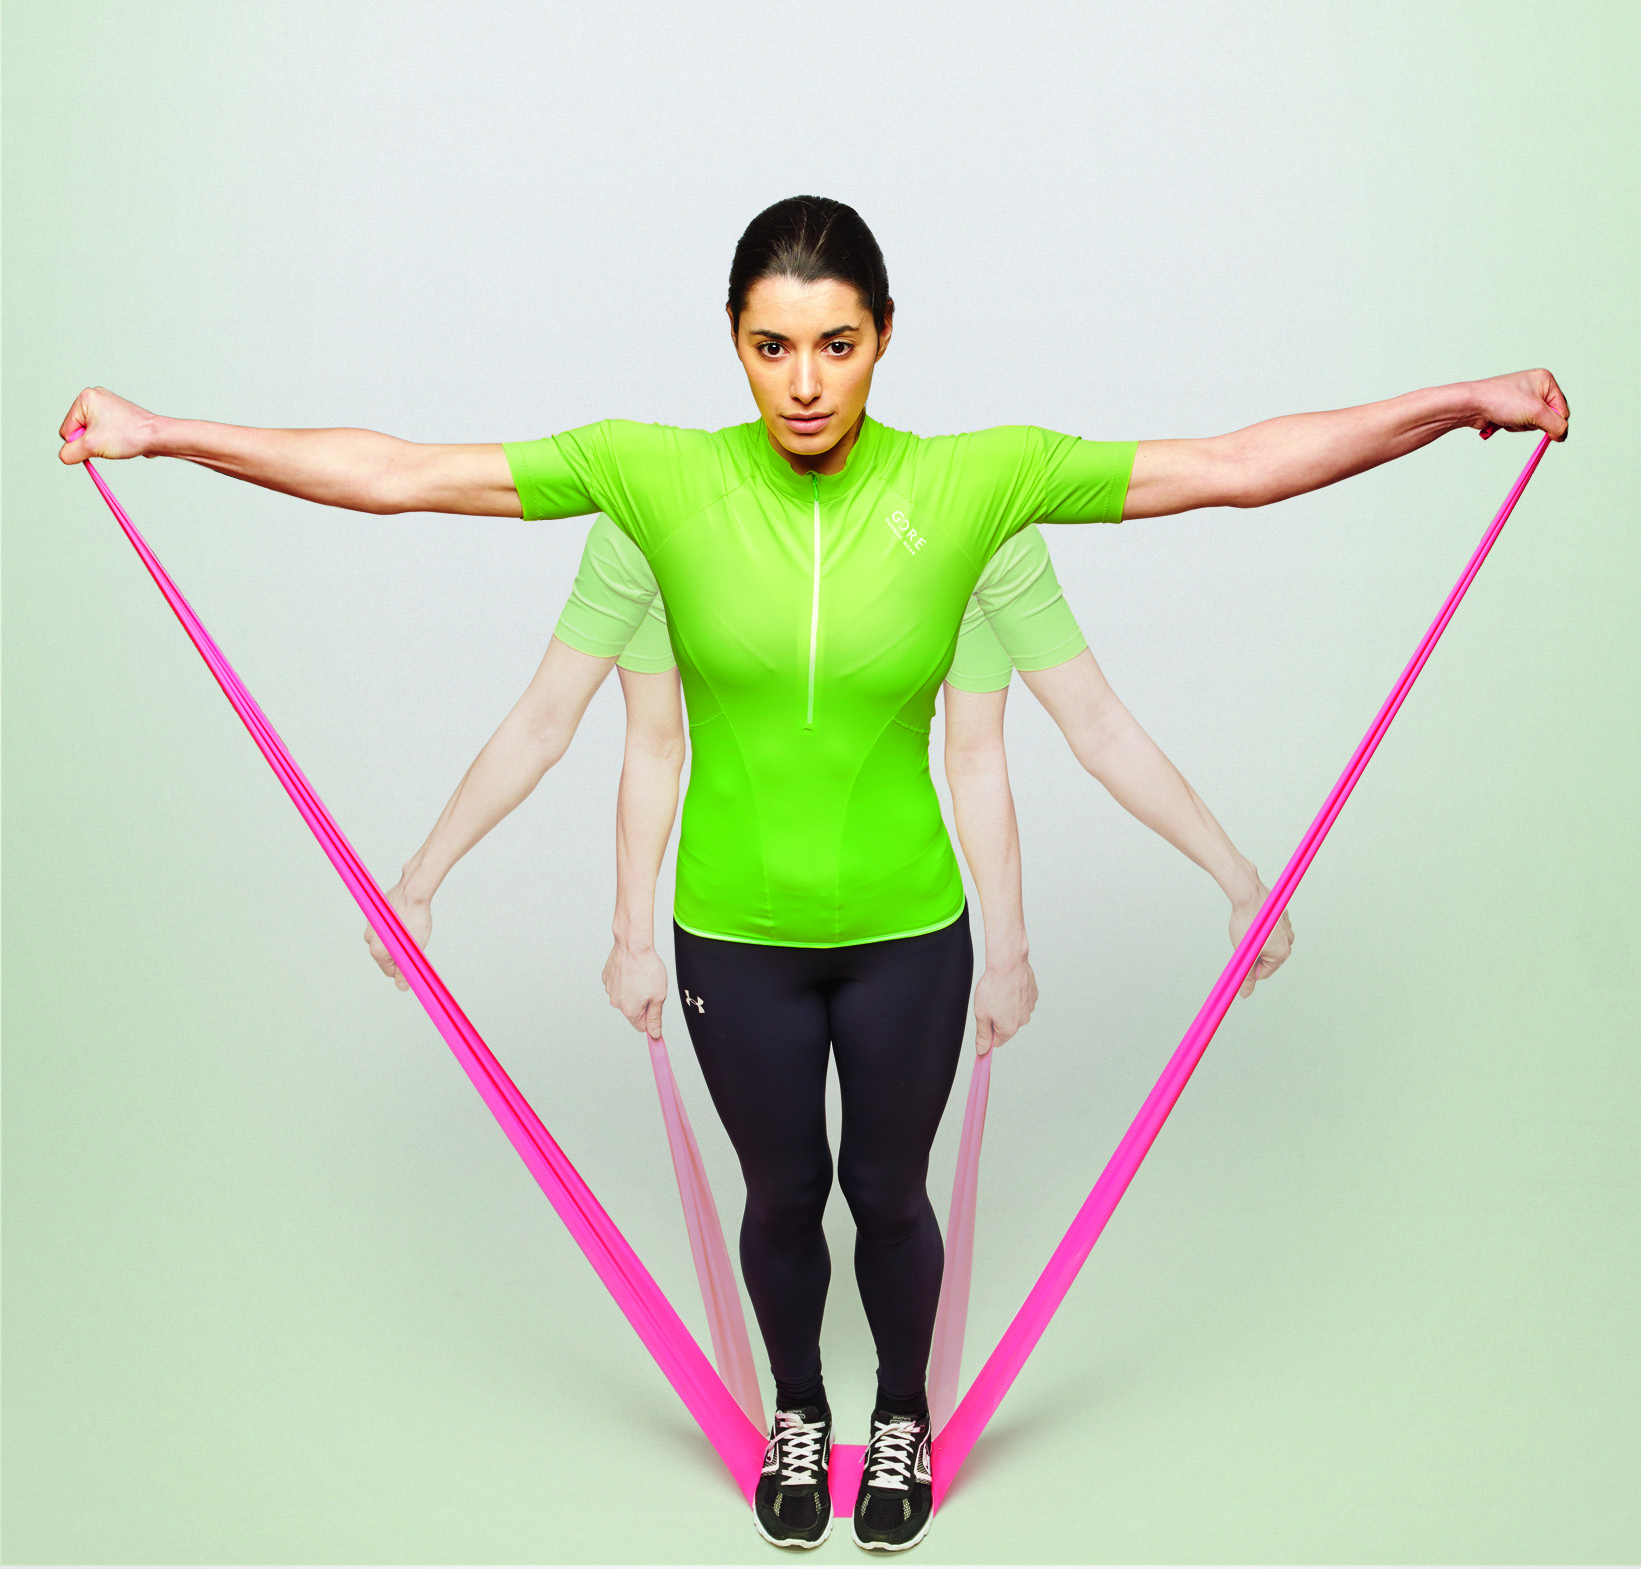 Women performing lateral raise with resistance band